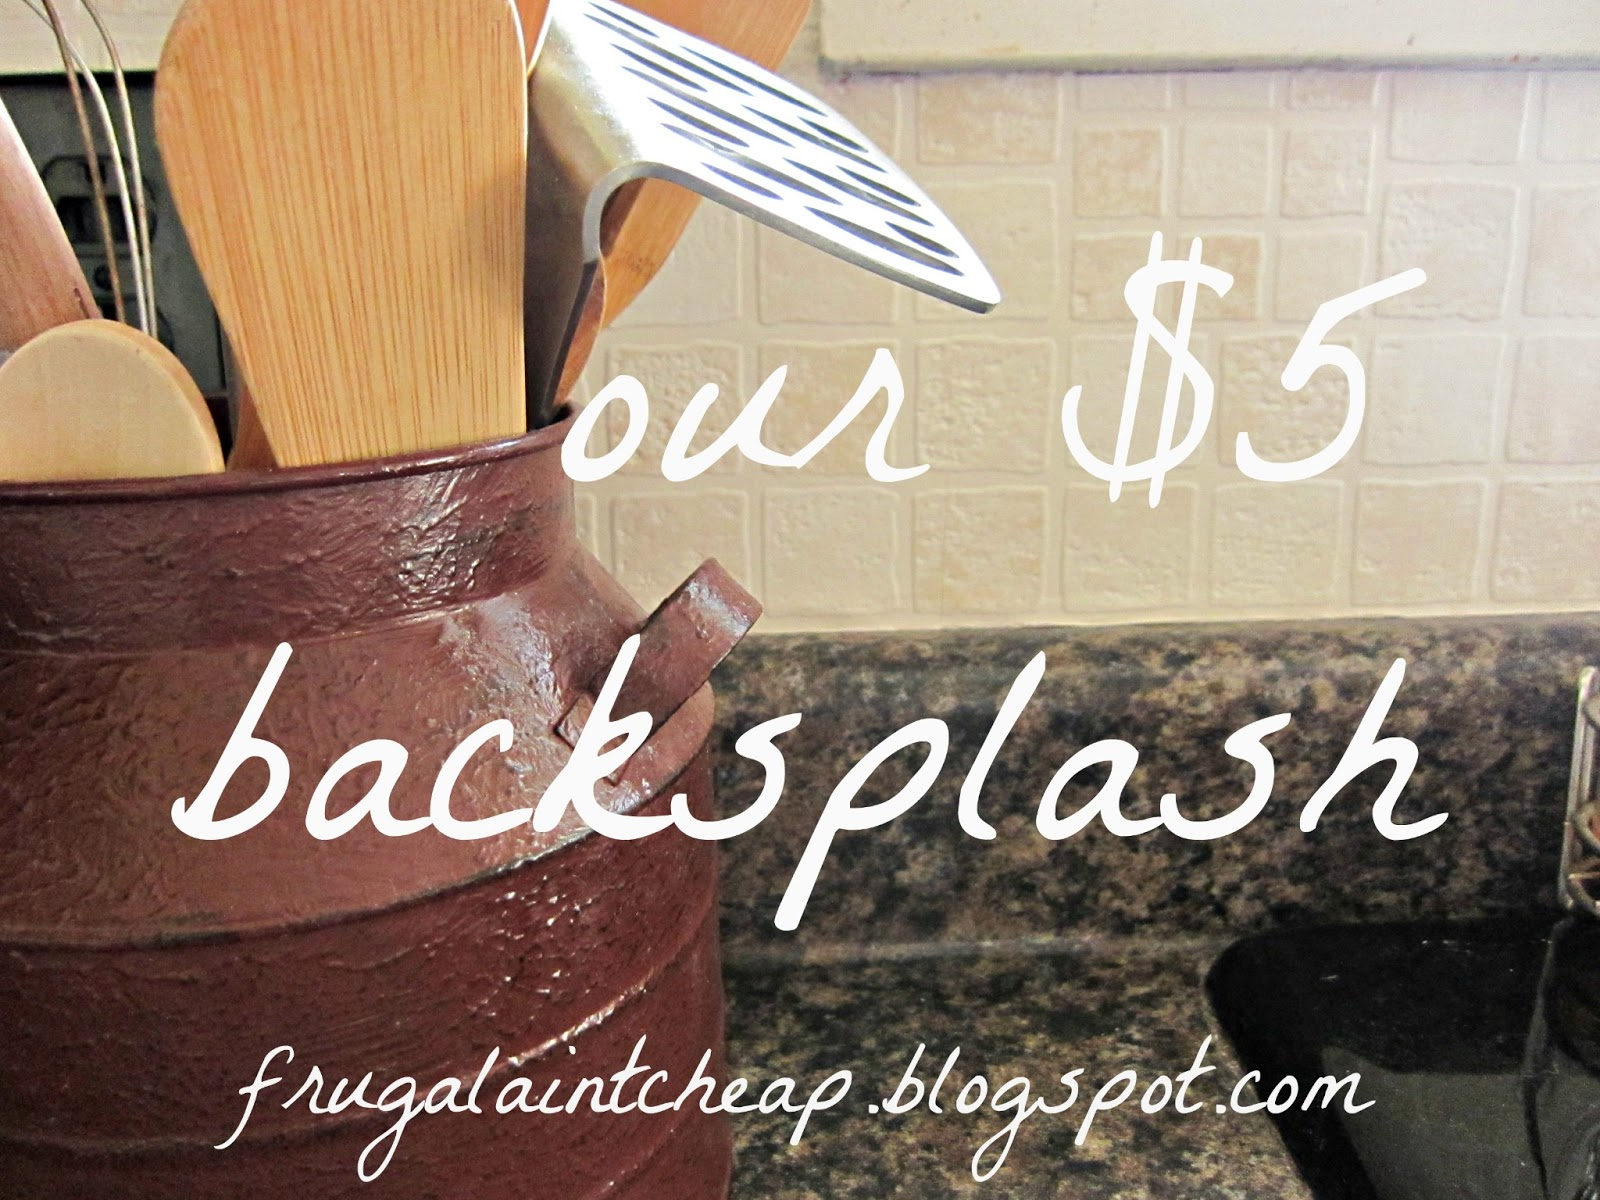 Frugal Aint Cheap Kitchen Backsplash great for renters too 1600x1200